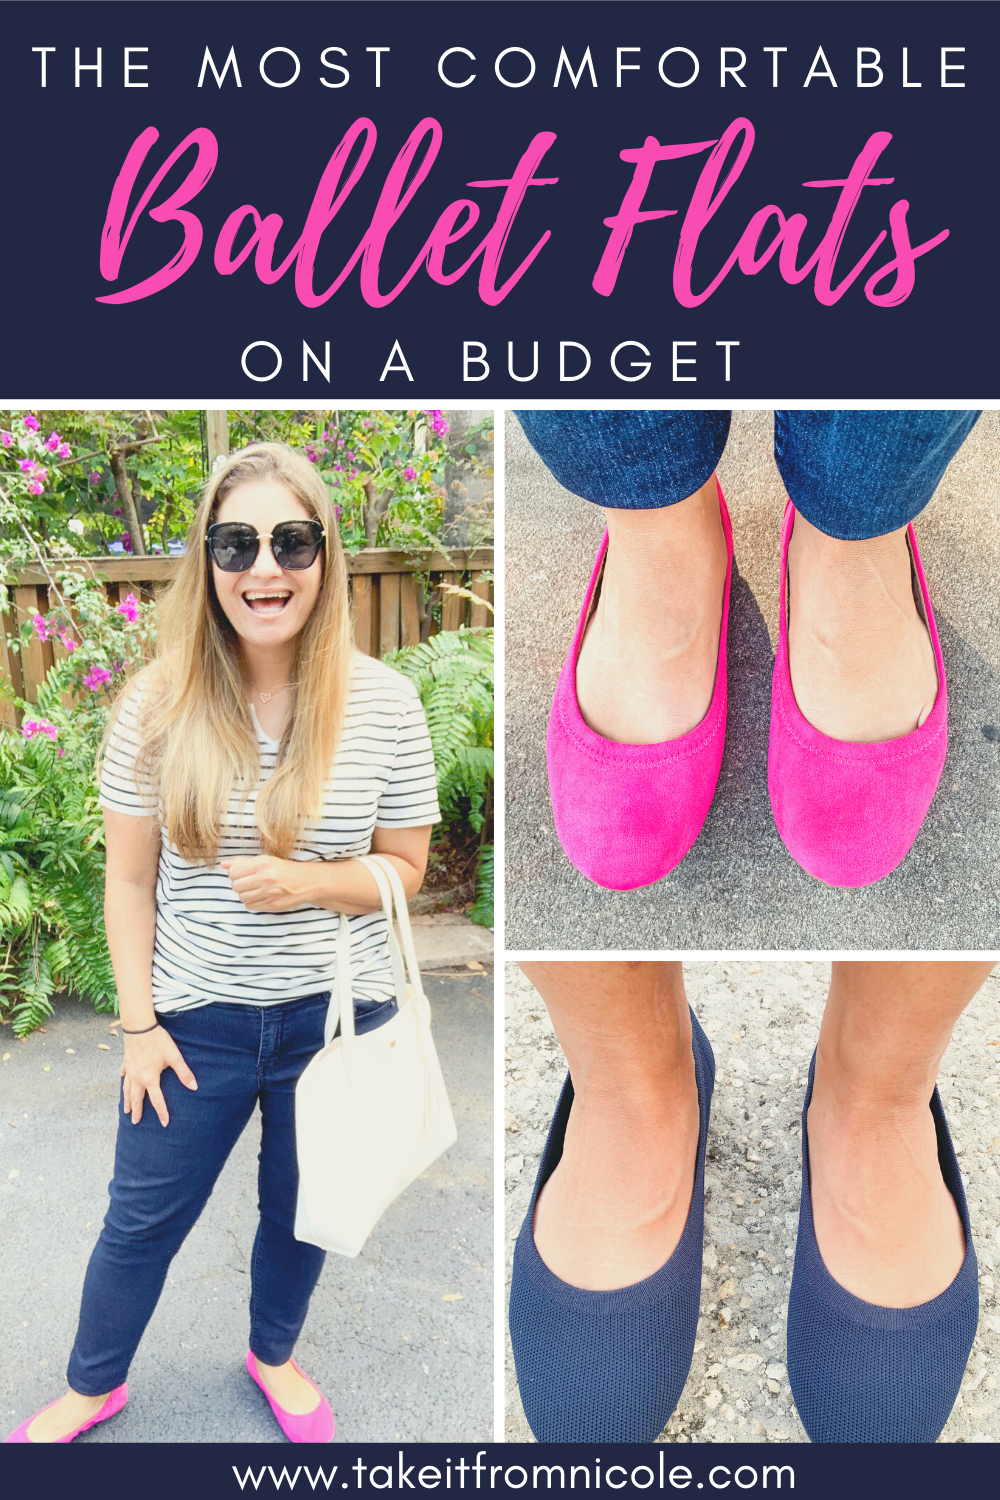 These budget friendly ballet flats are sure to be a staple in your wardrobe! They are very comfortable and come in a rainbow of colors. These are great for both casual and work wear.